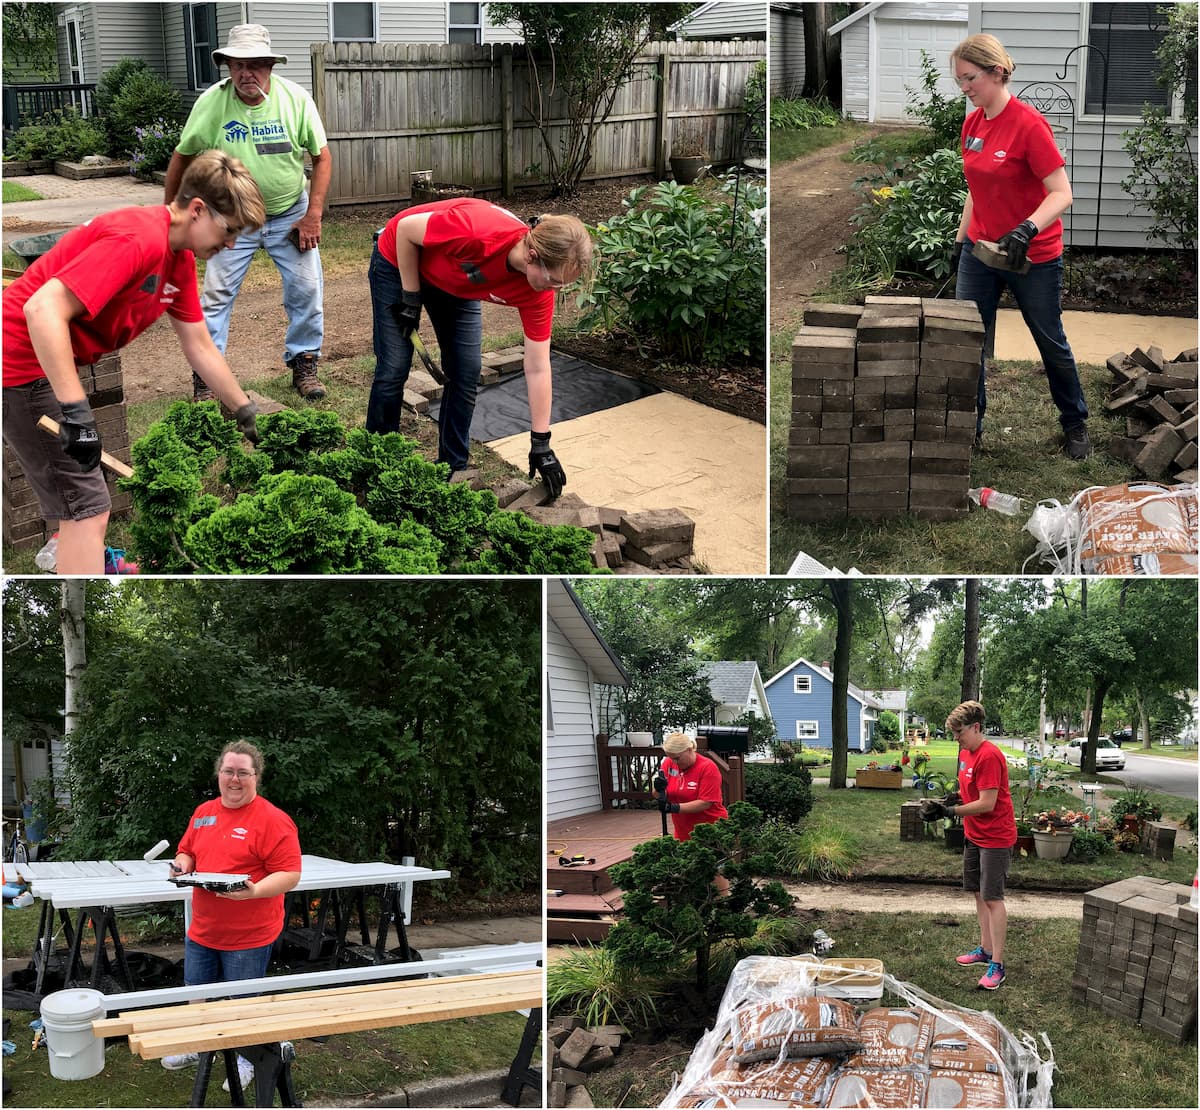 A collage of images showing DCECU employees working in the yard of a Habitat for Humanity house in Midland Michigan